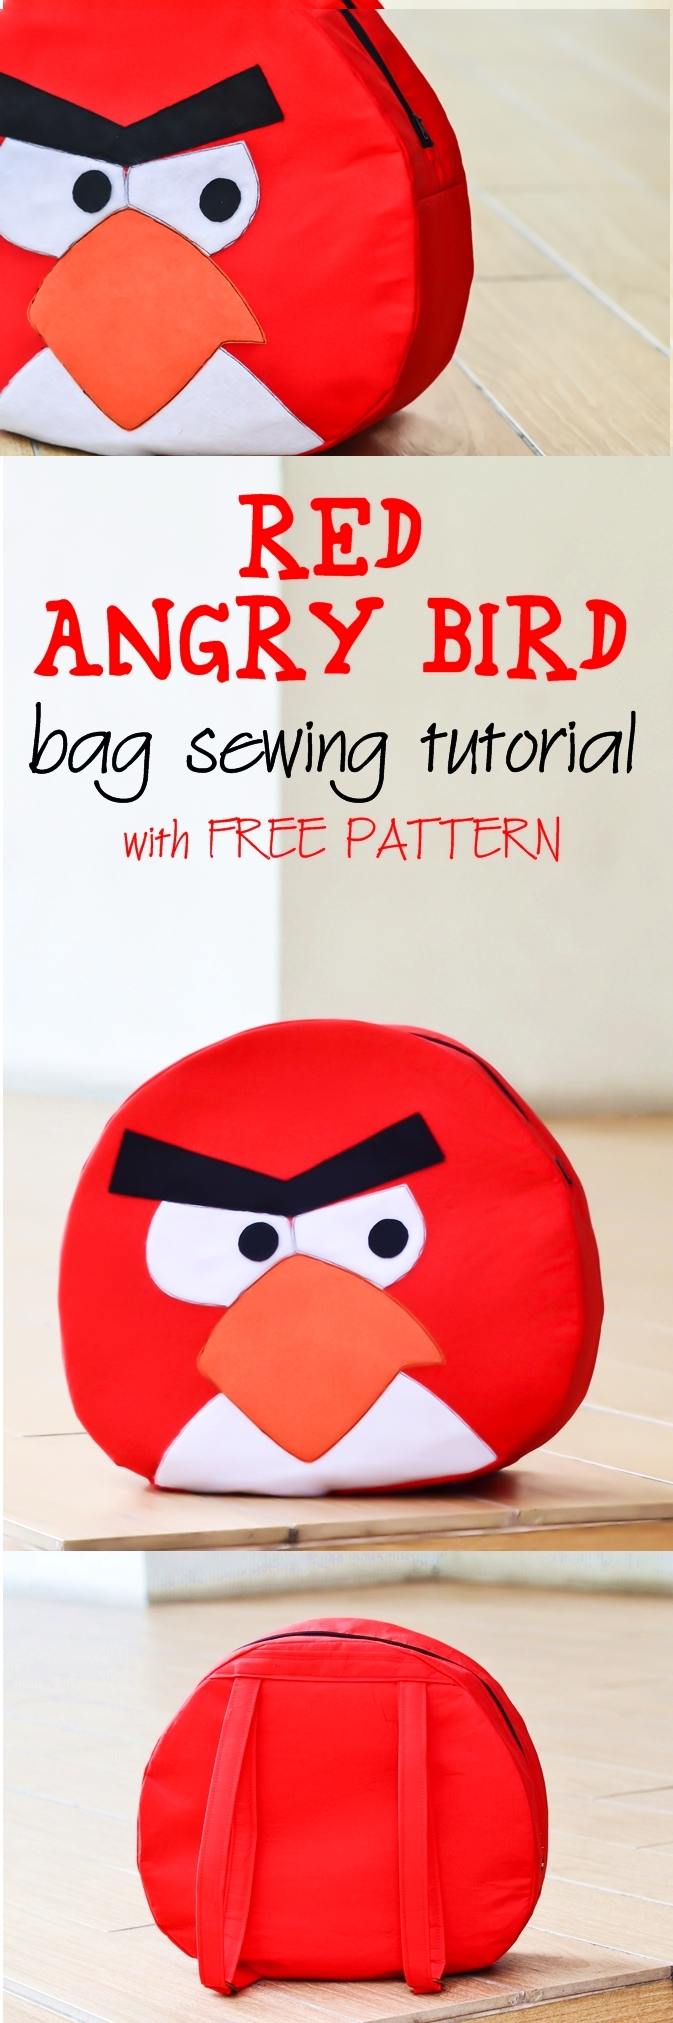 Learn to make a super cute Angry bird bag for your little crazy angry bird fans. This tutorial also has A FREE SEWING PATTERN. Check it out now!